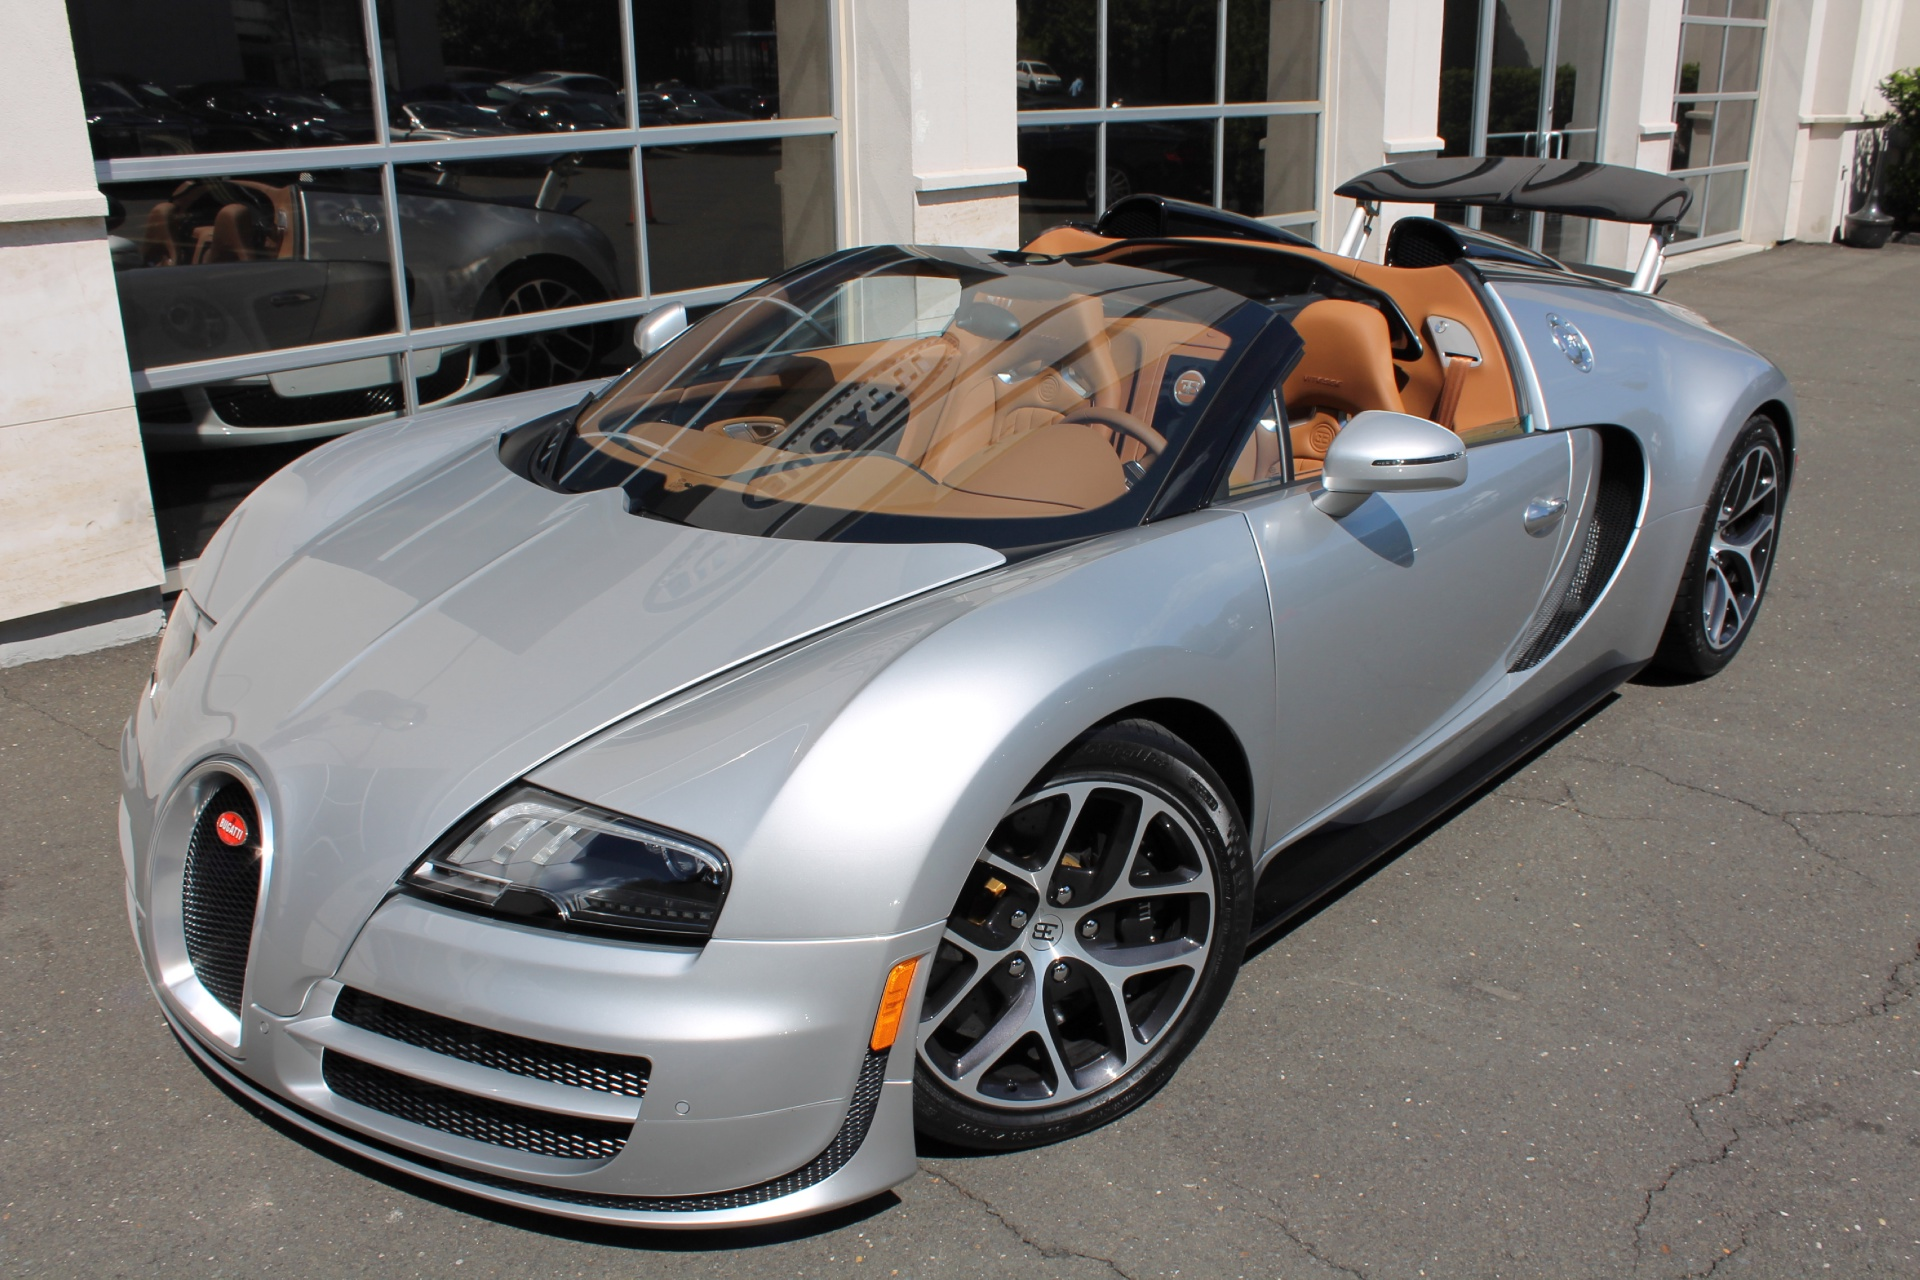 two bugatti veyron grand sport vitesse's for sale at u.s. dealer